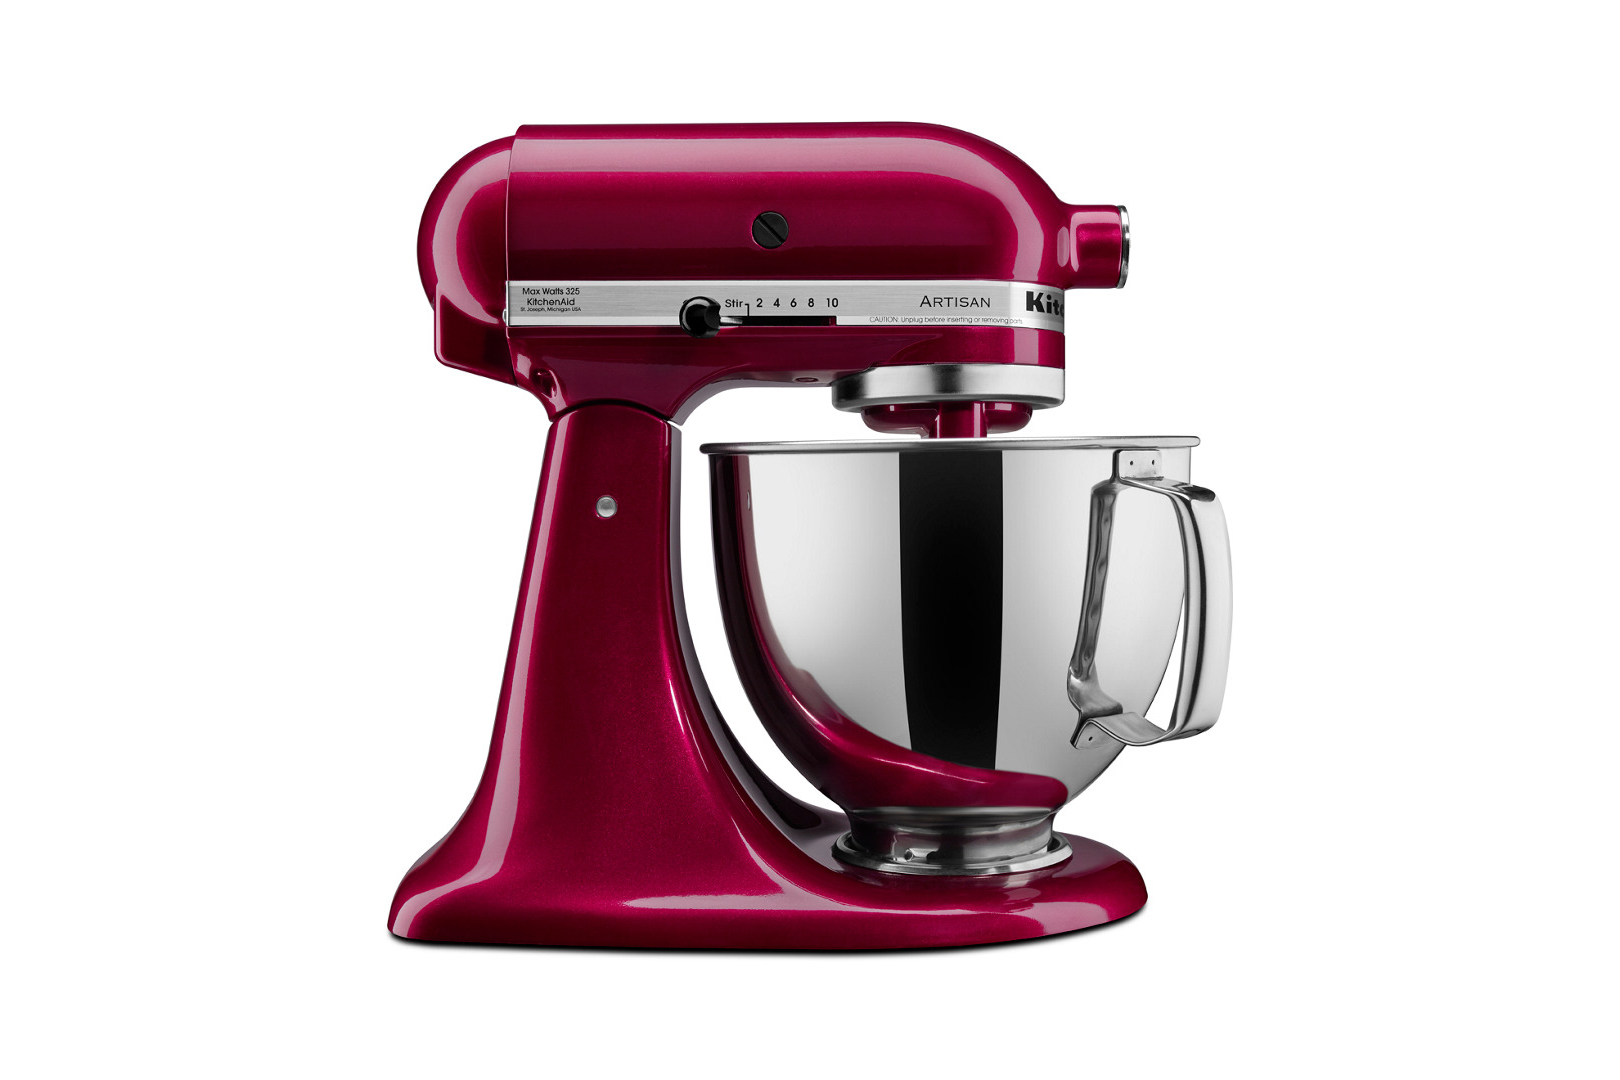 Kitchenaid Mixers And Appliances On Sale At Rue La La